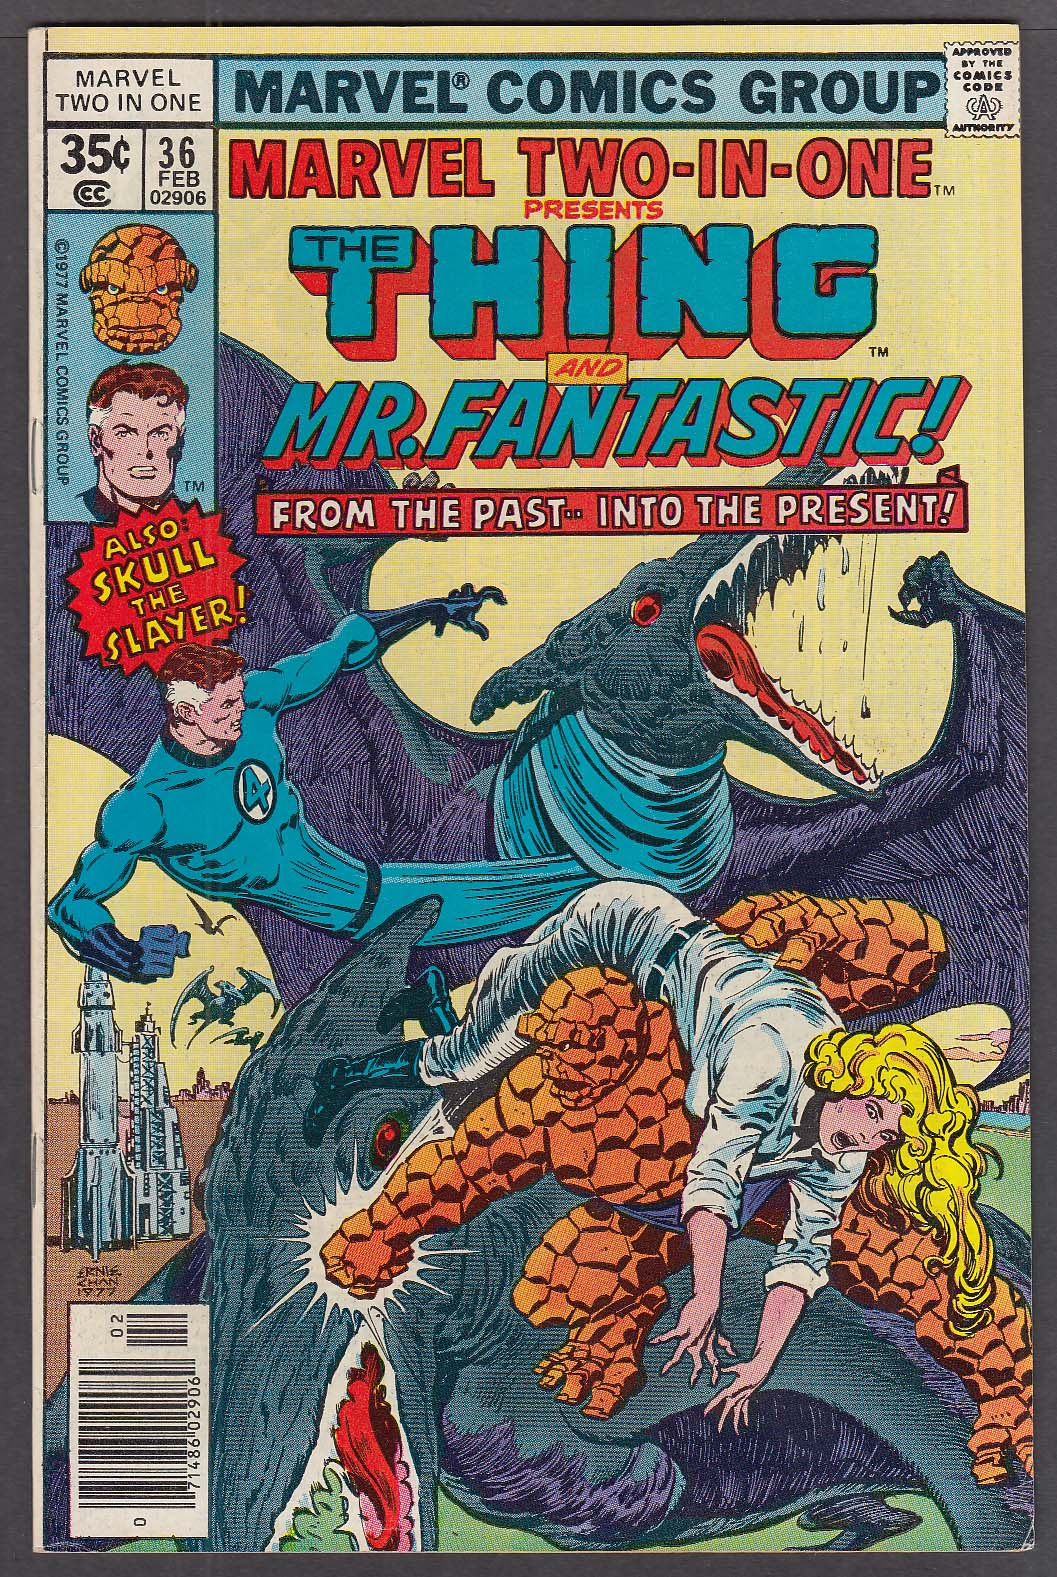 Image for MARVEL TWO-IN-ONE #36 The Thing Mr Fantastic comic book 2 1978